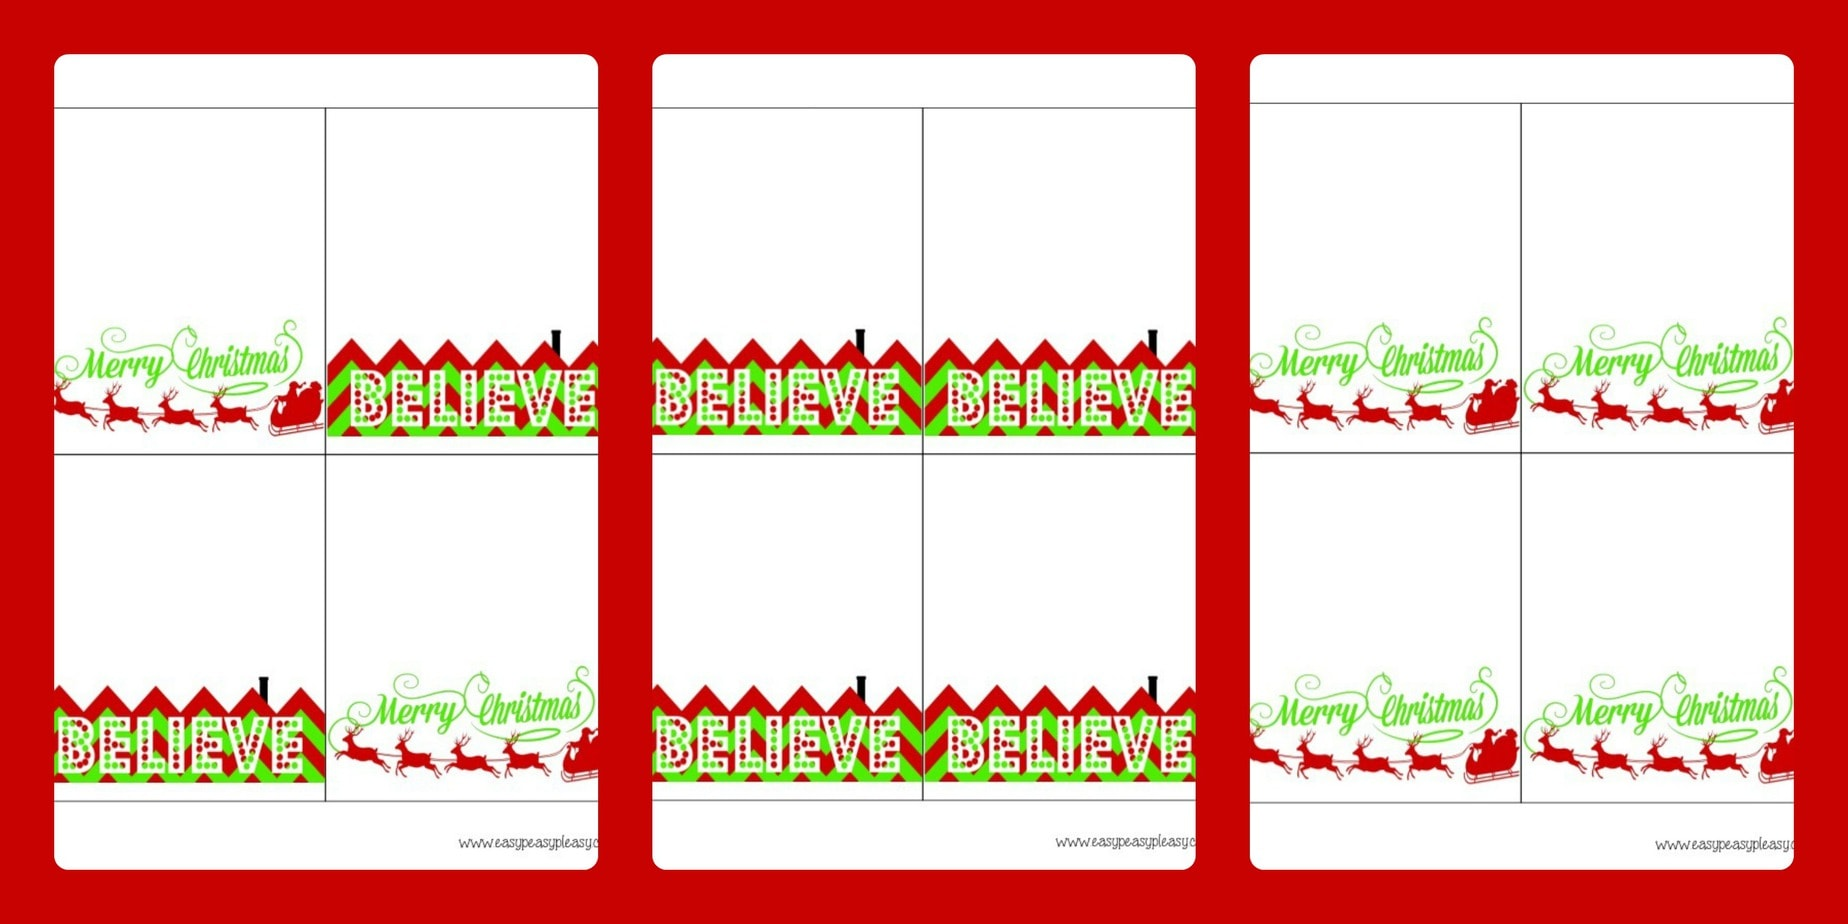 Free printable merry christmas and believe treat bag toppers here